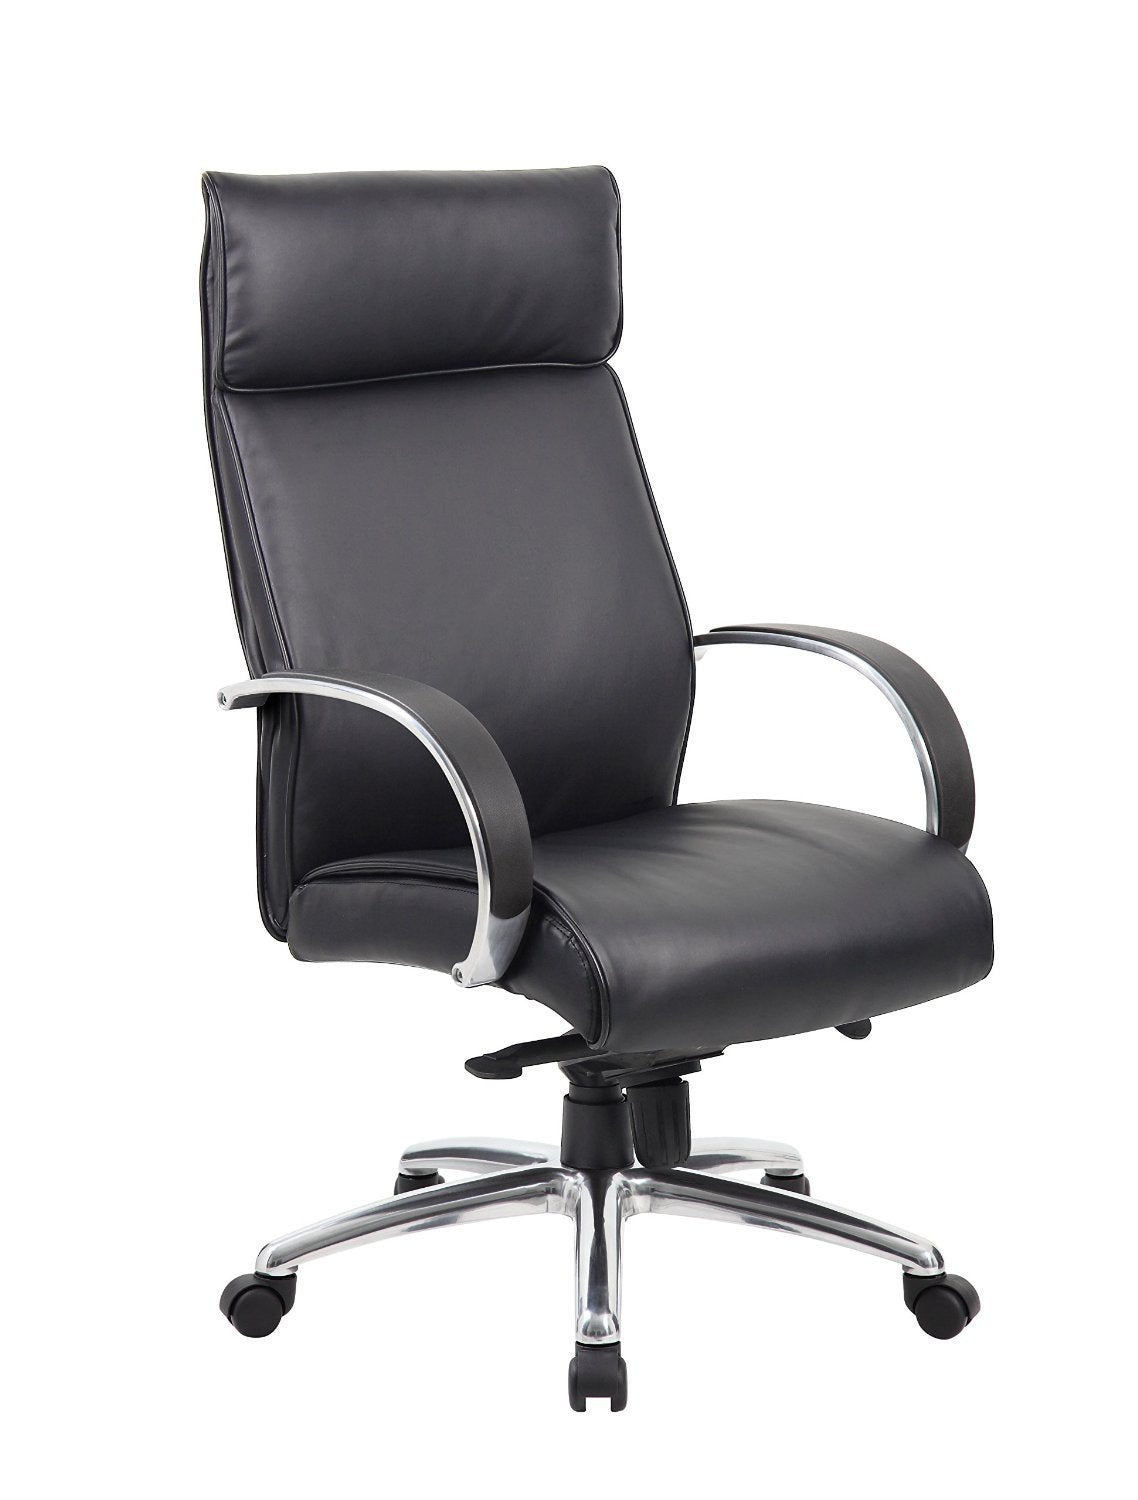 Boss Office Products B7712-BK Boss High Back Executive Chair / Black Finish / Black Upholstery / Knee Tilt from Boss Office Products